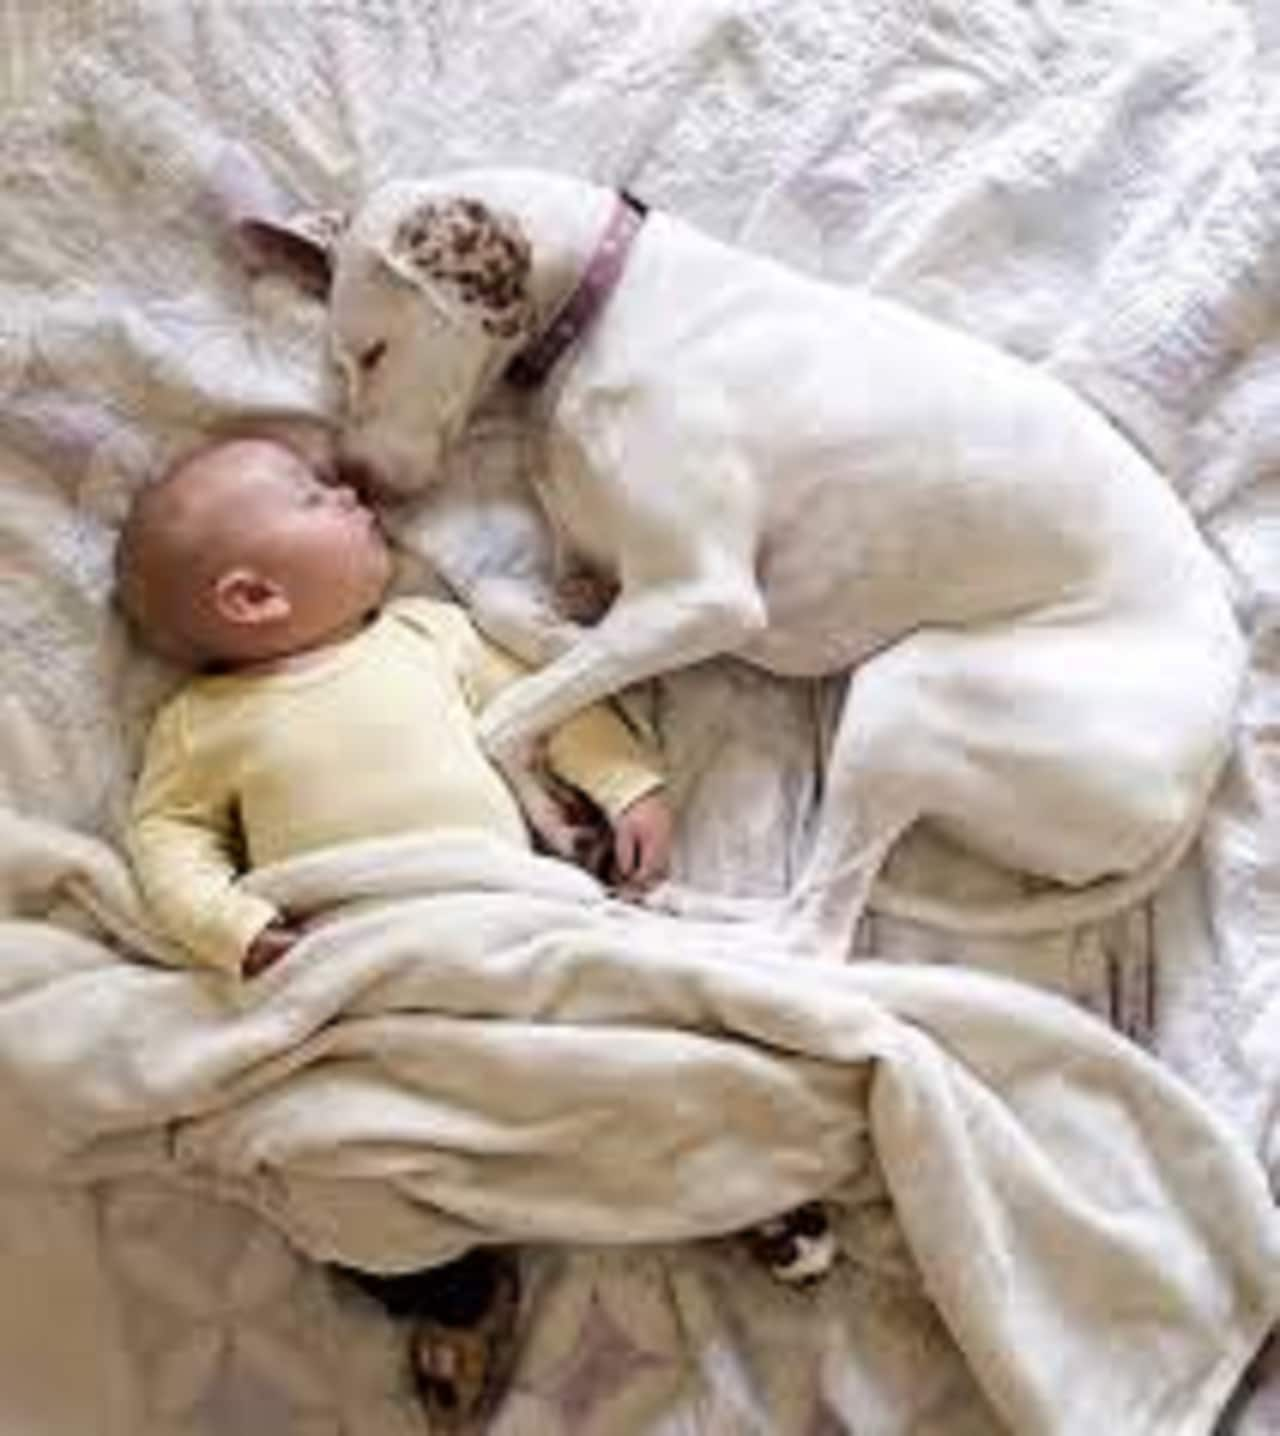 dog and baby sleeping side by side